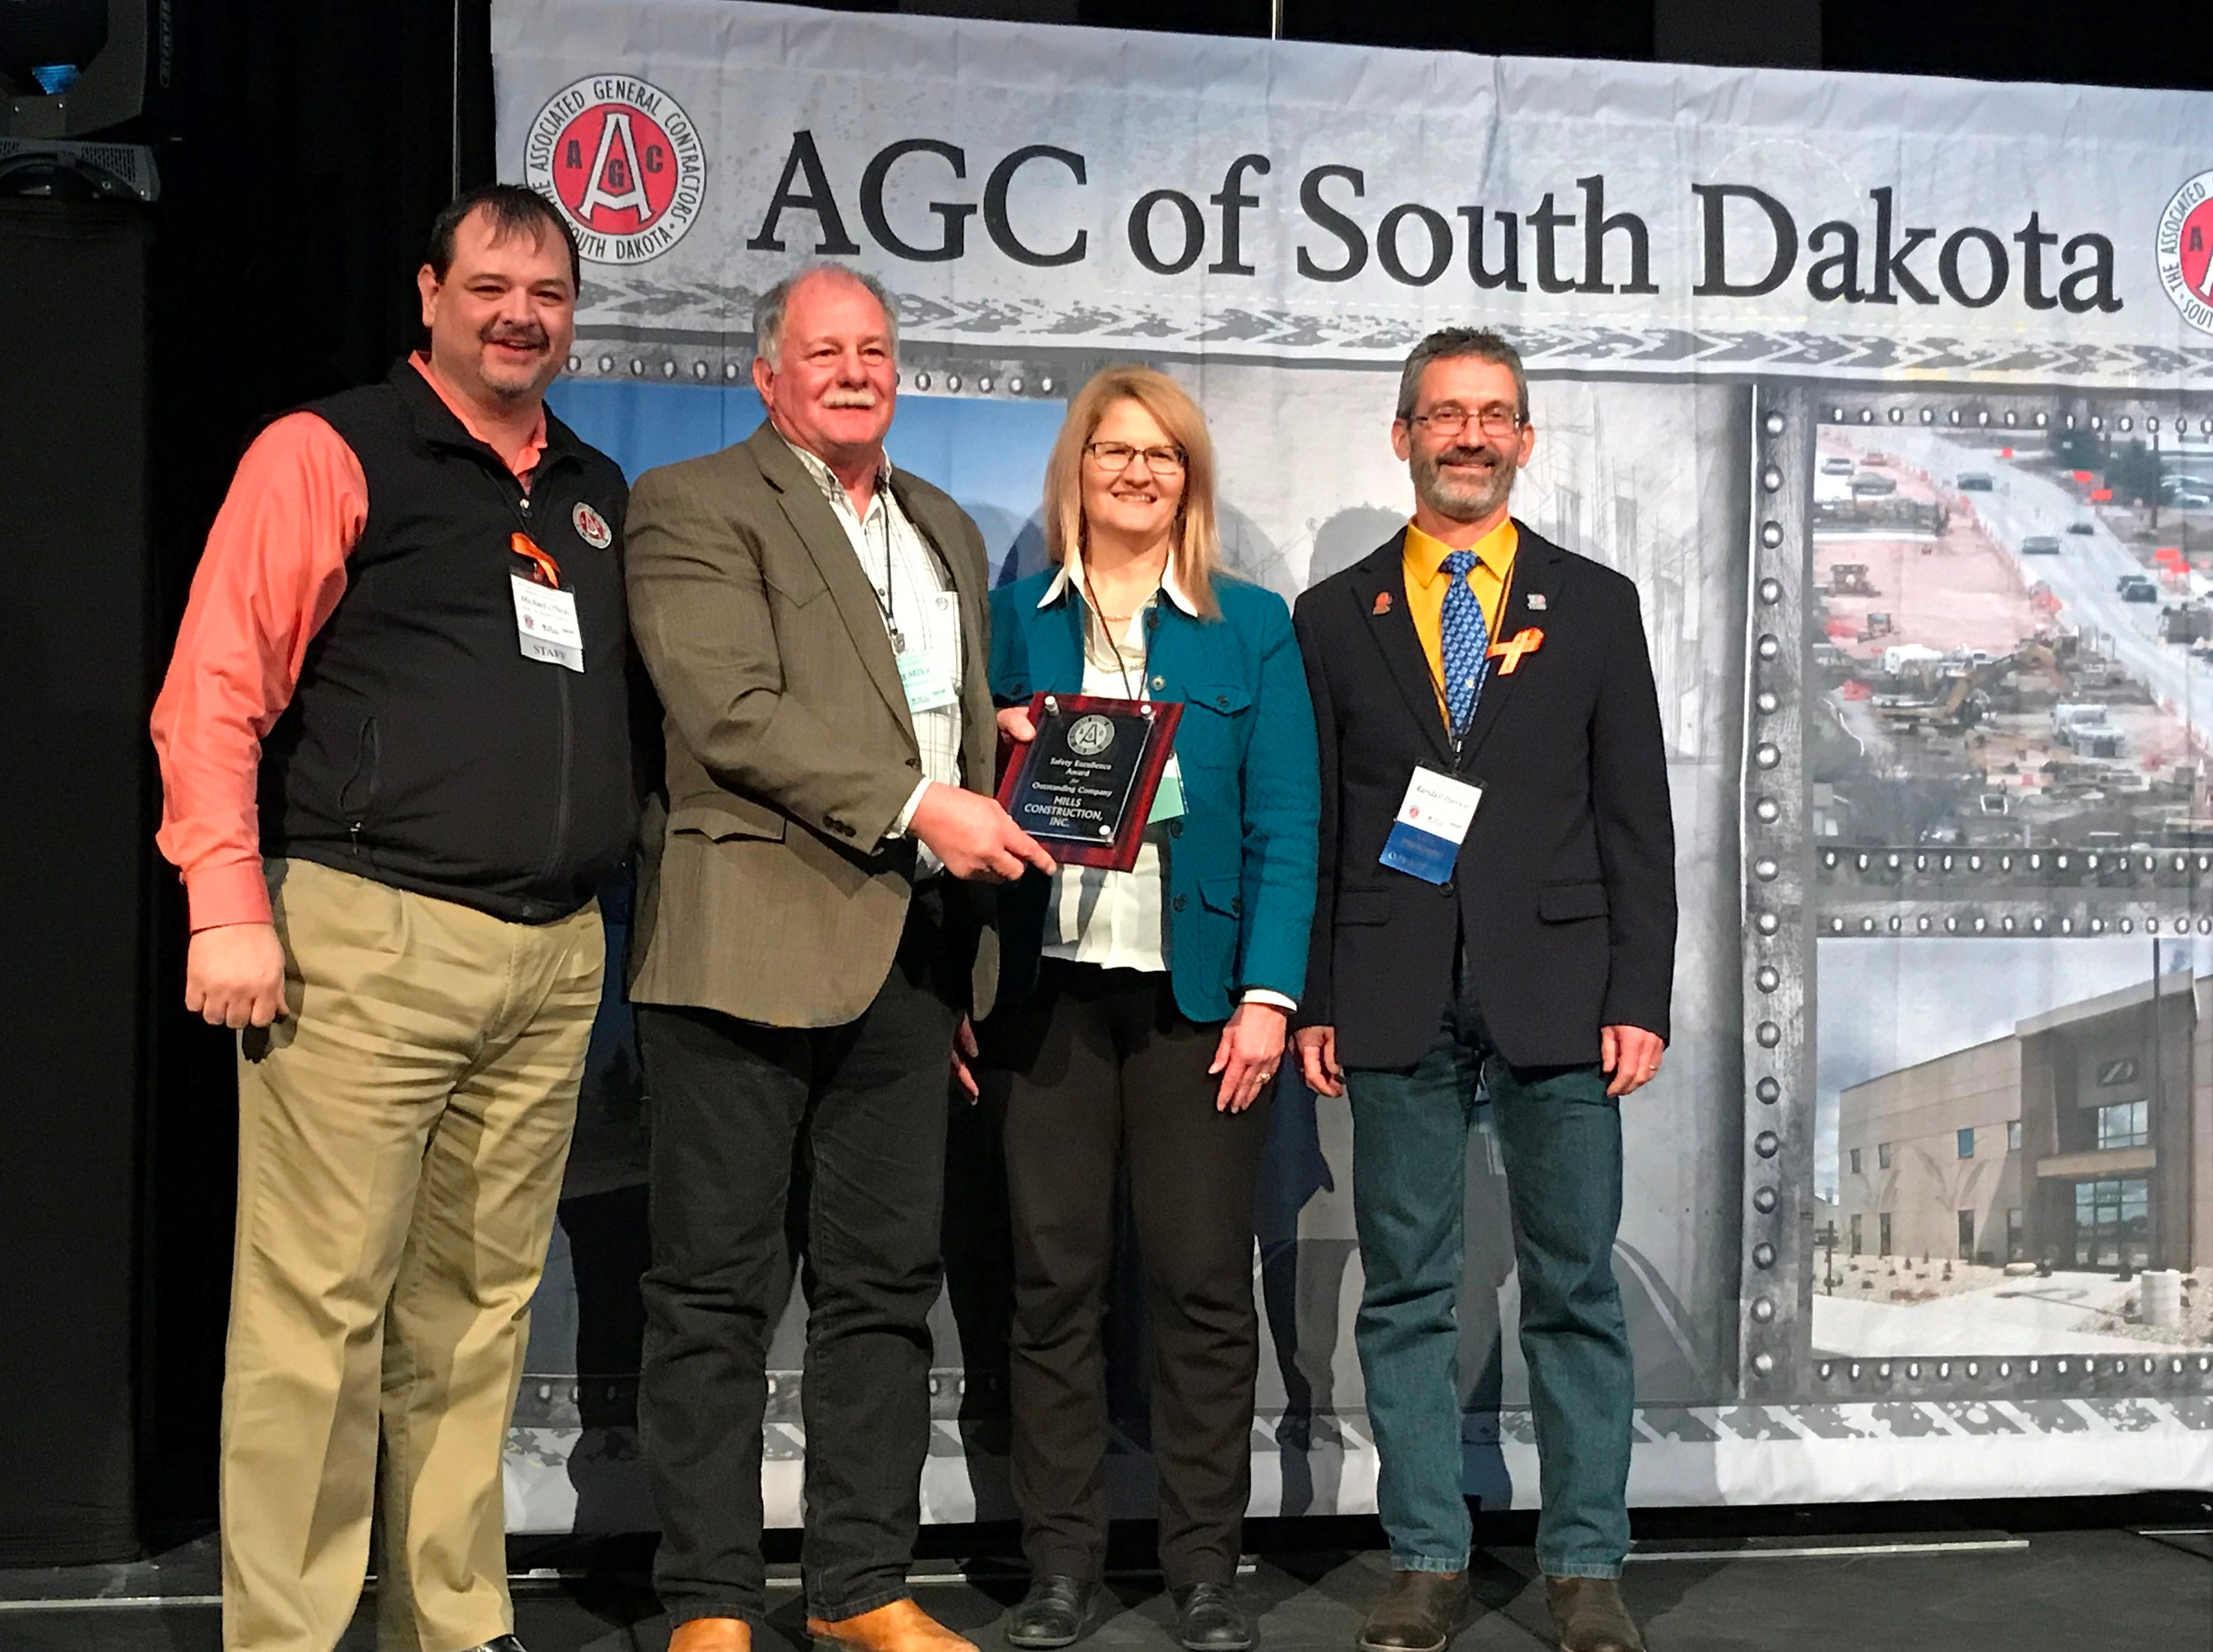 AGC of South Dakota recognized Mills Construction Inc. of Brookings with the Safety Excellence Award and the Build South Dakota Award. Pictured, from left:  Michael O'Neal, AGC of South Dakota; from Mills Construction Inc., Greg Miller, safety director, Marlene Schram and Randy Hanson.